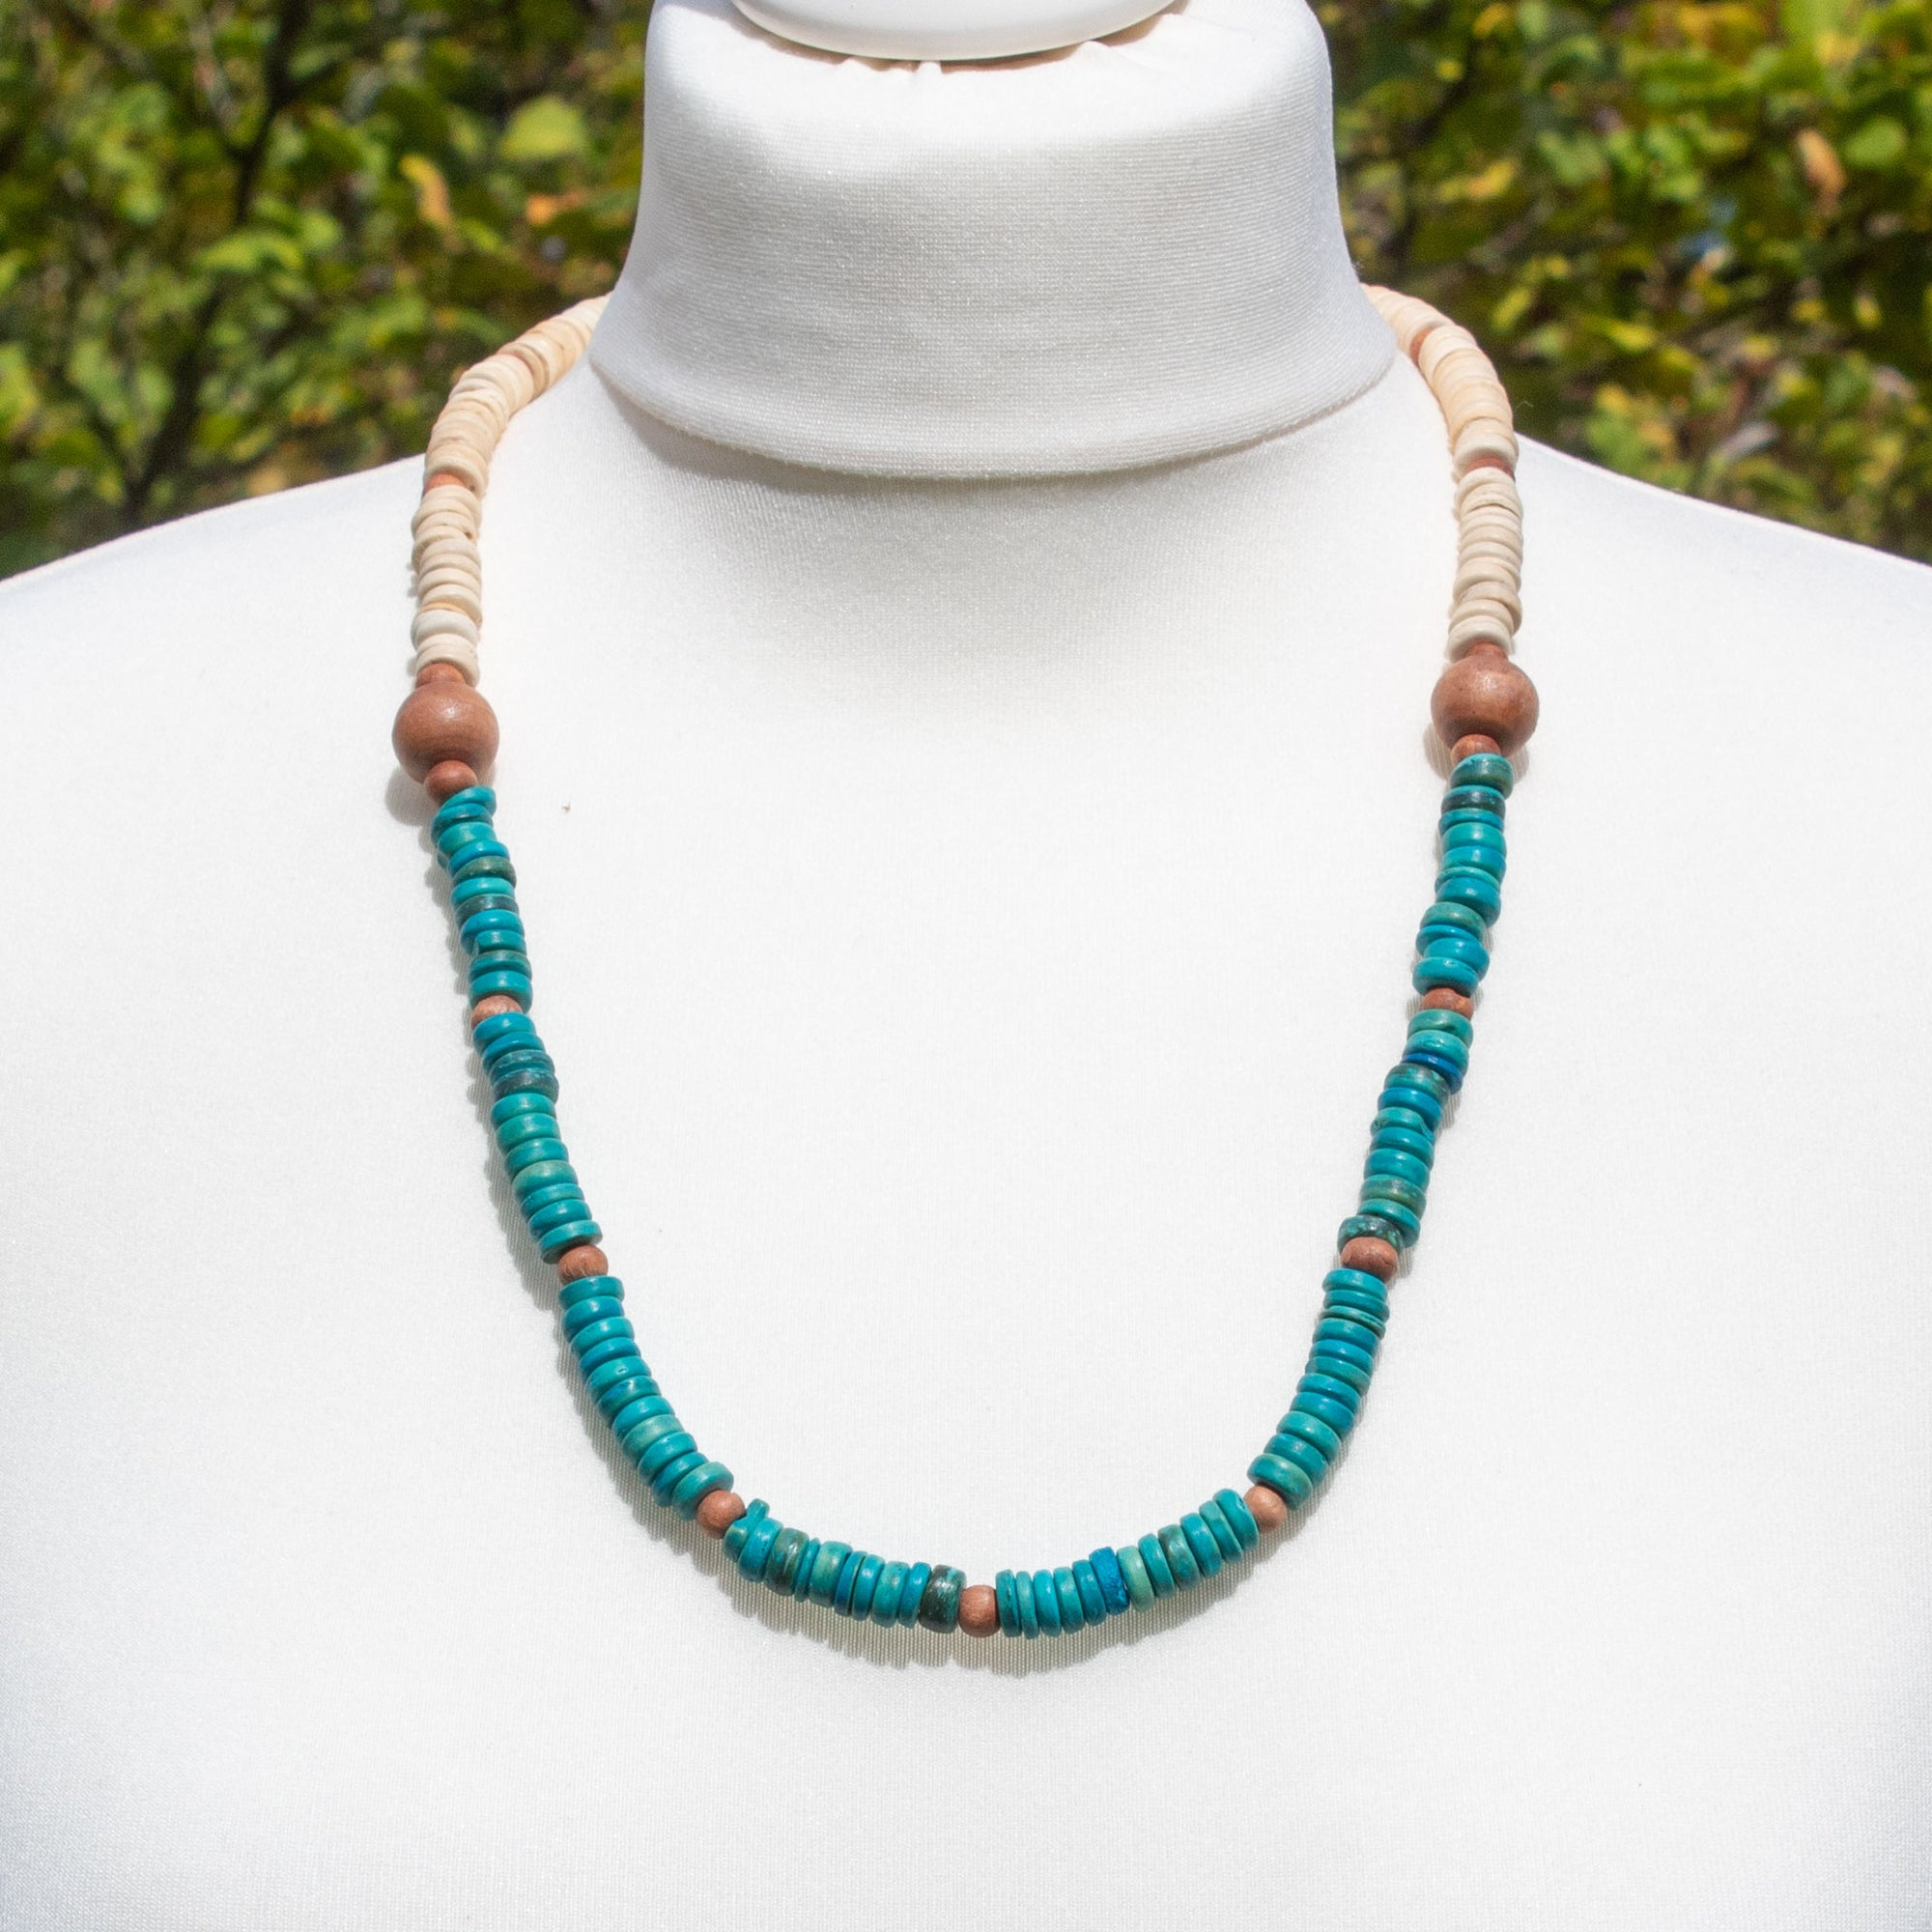 Cream & Turquoise Wooden Bead Necklace | Necklace - The Naughty Shrew